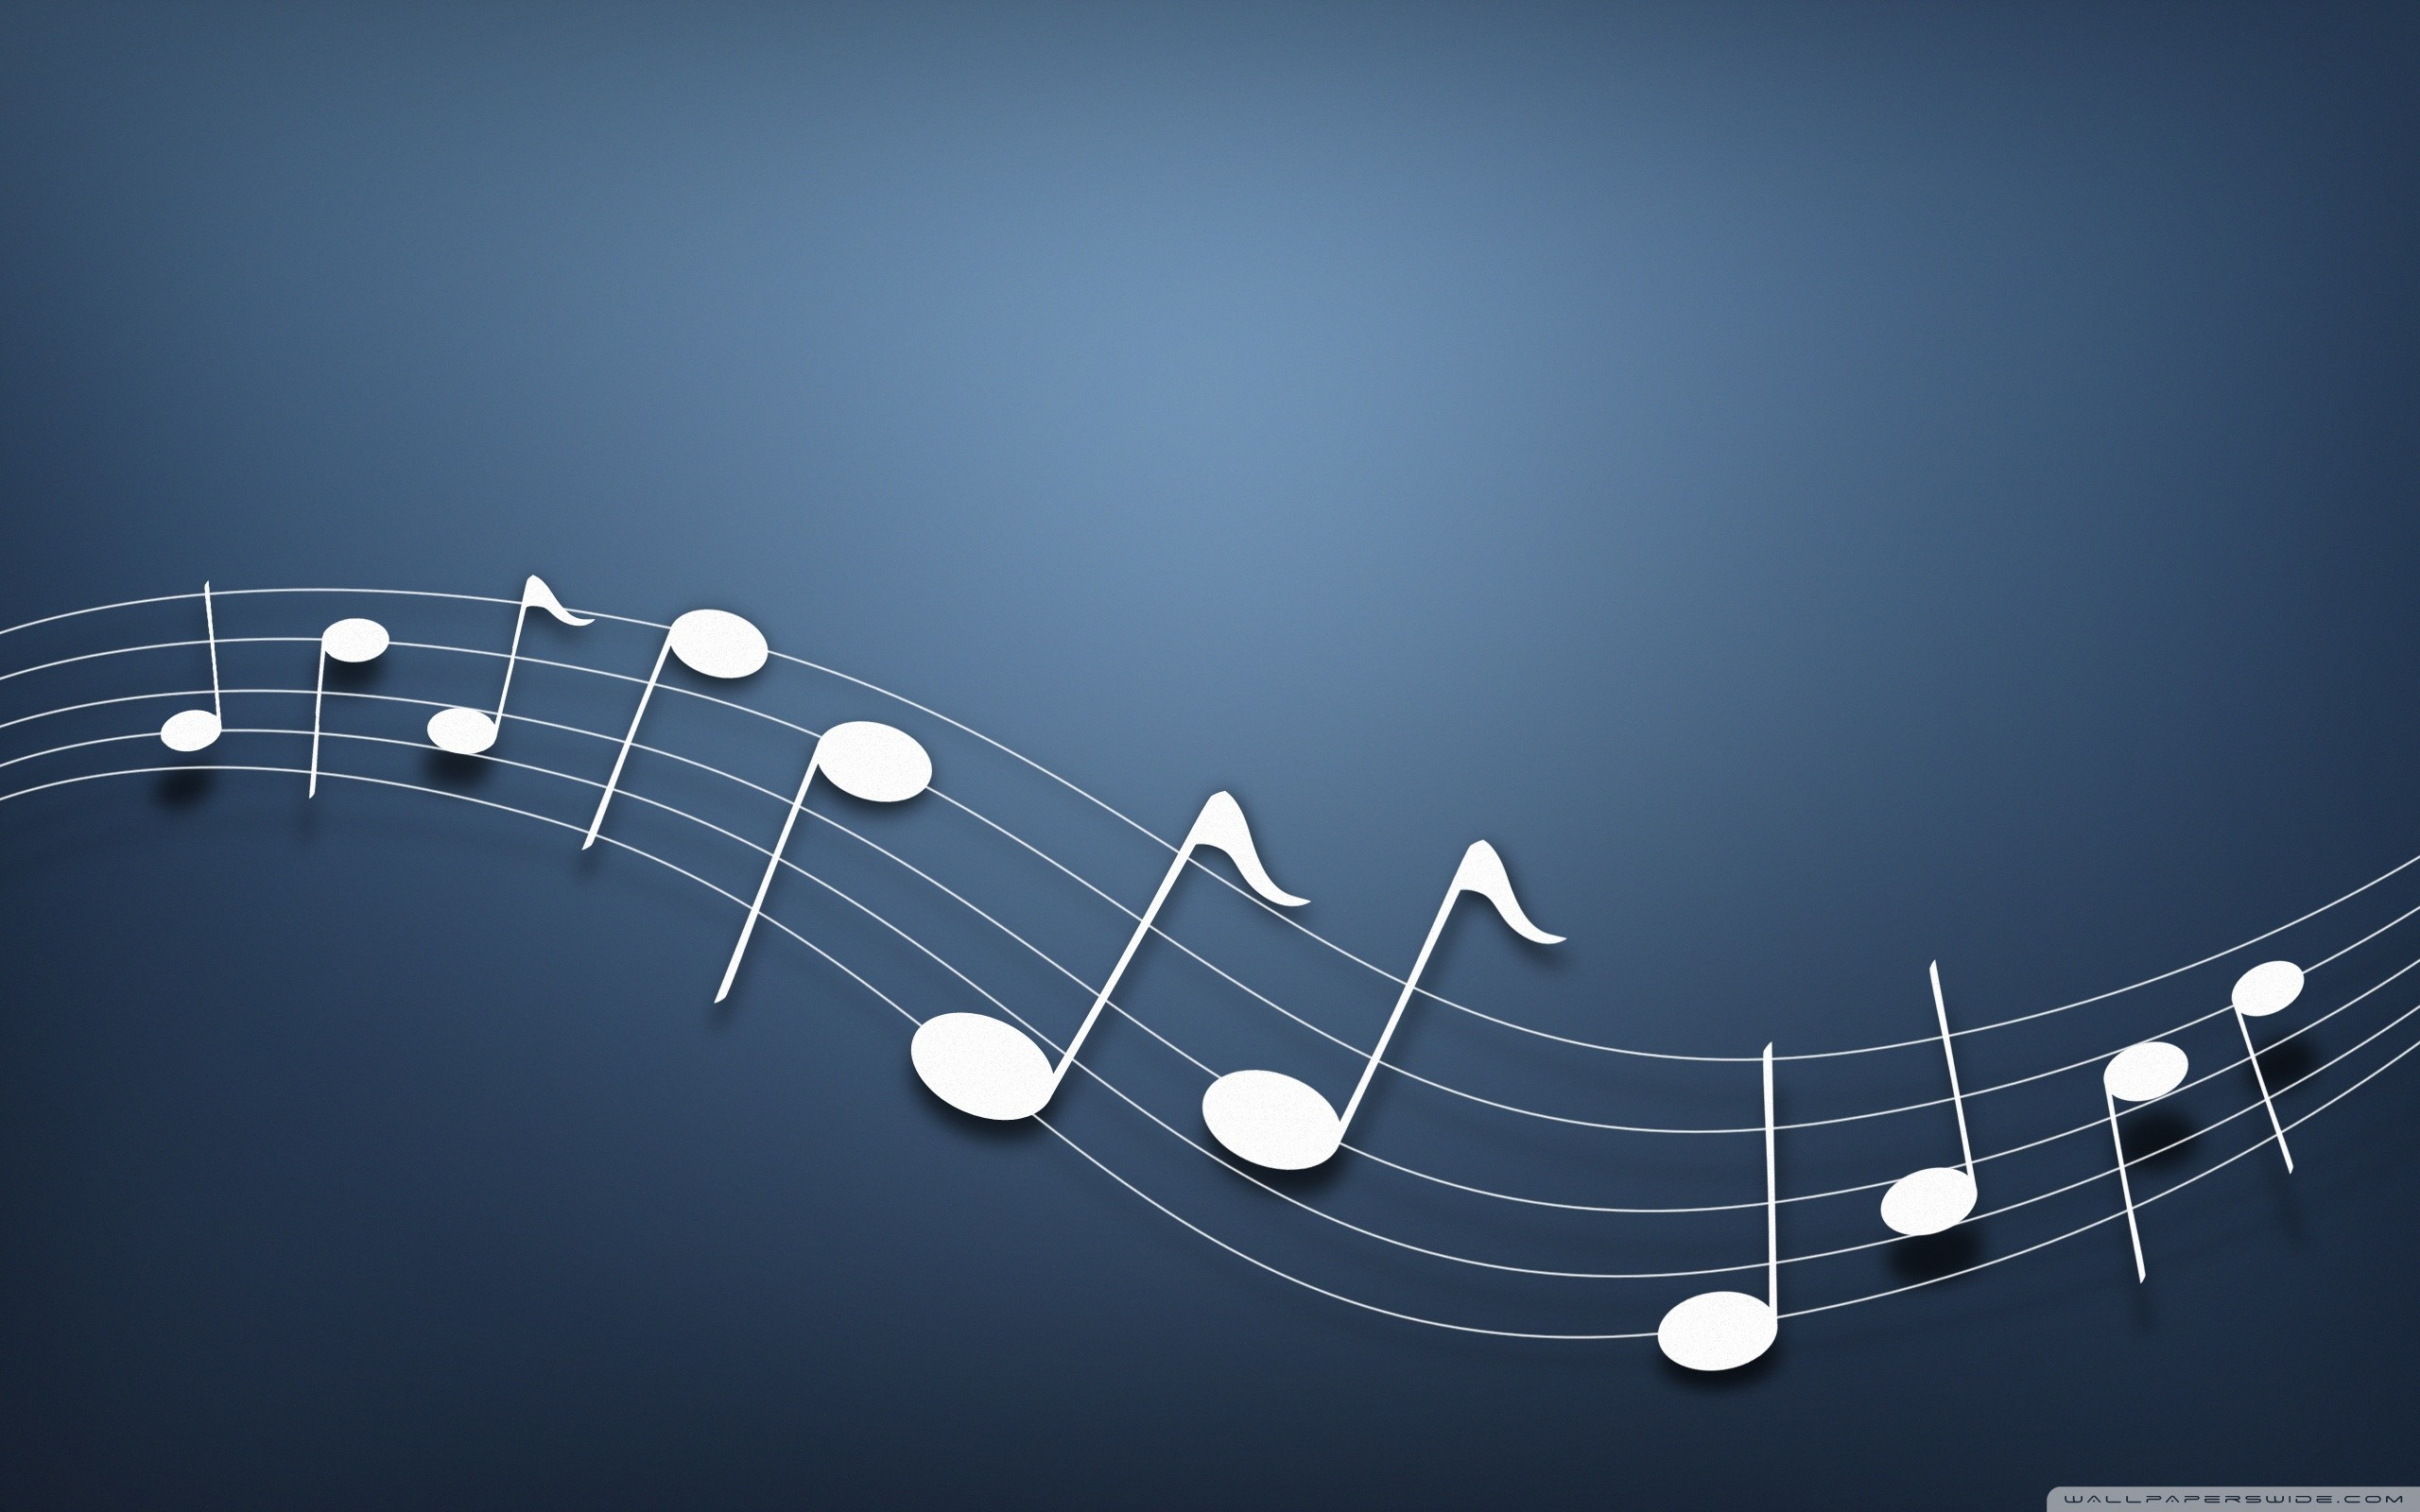 Amazing Music Wallpapers: Music Background Images ·①